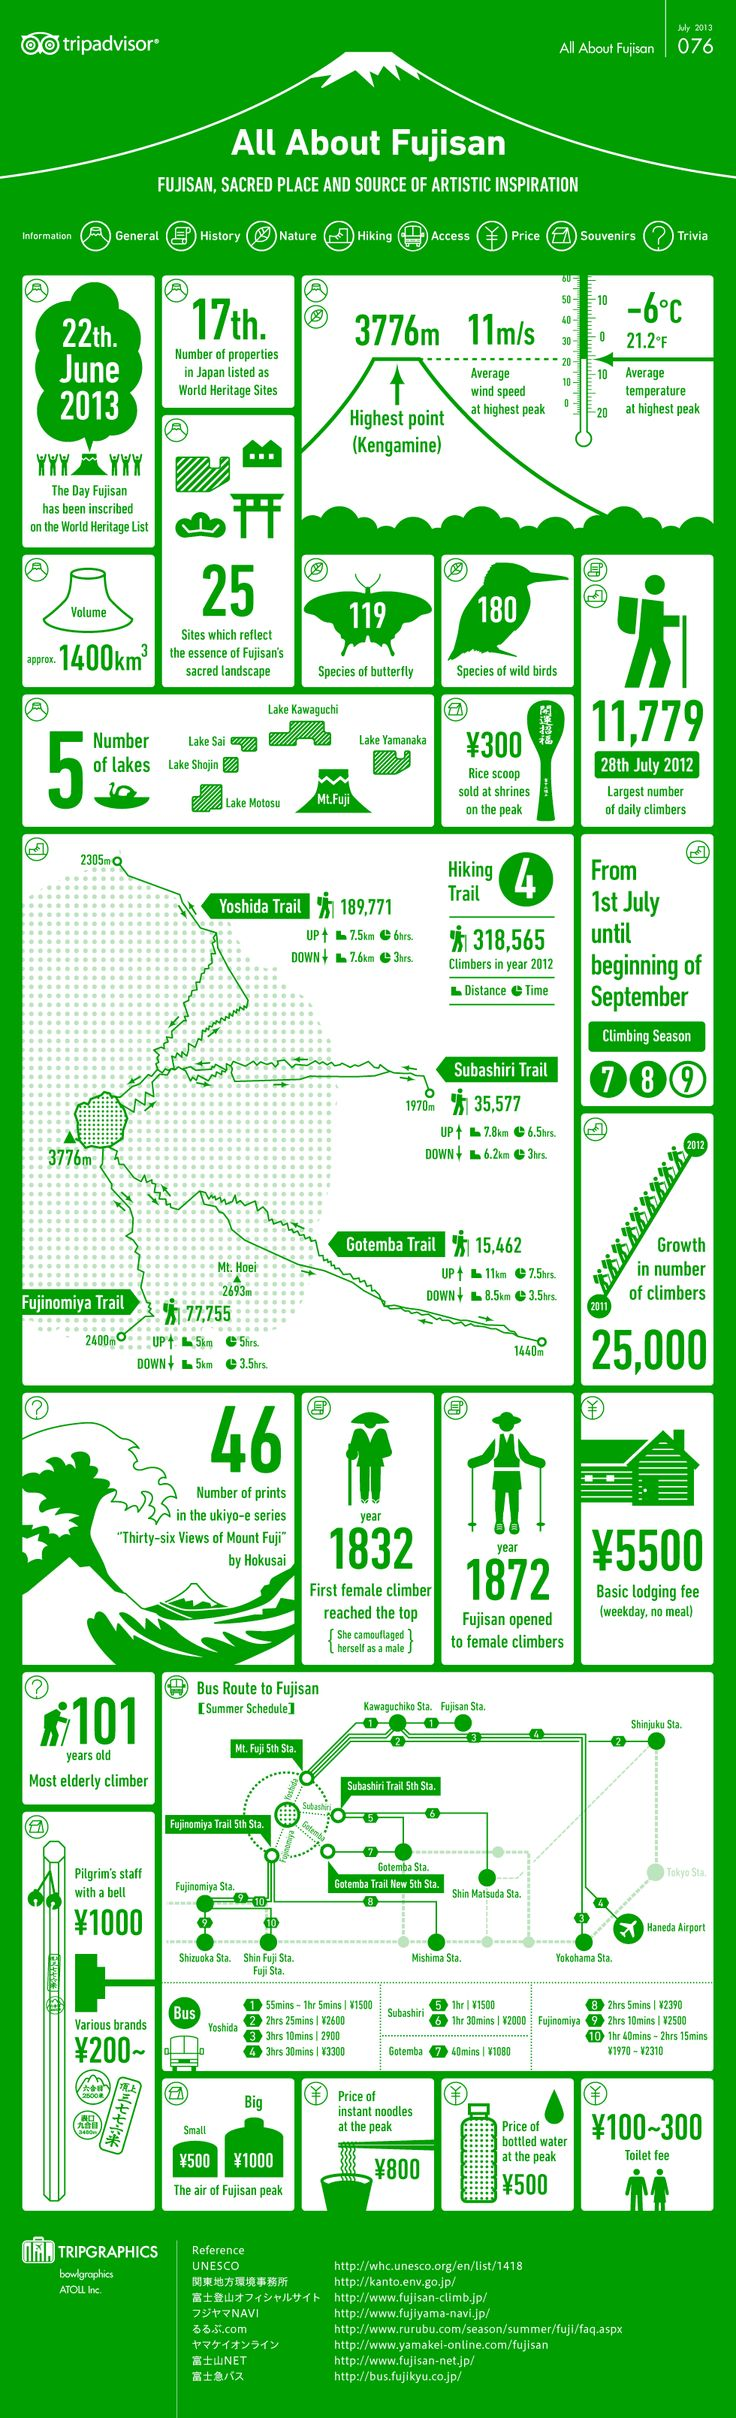 Unique Infographic Design, All About Fujisan #Infographic #Design (http://www.pinterest.com/aldenchong/)